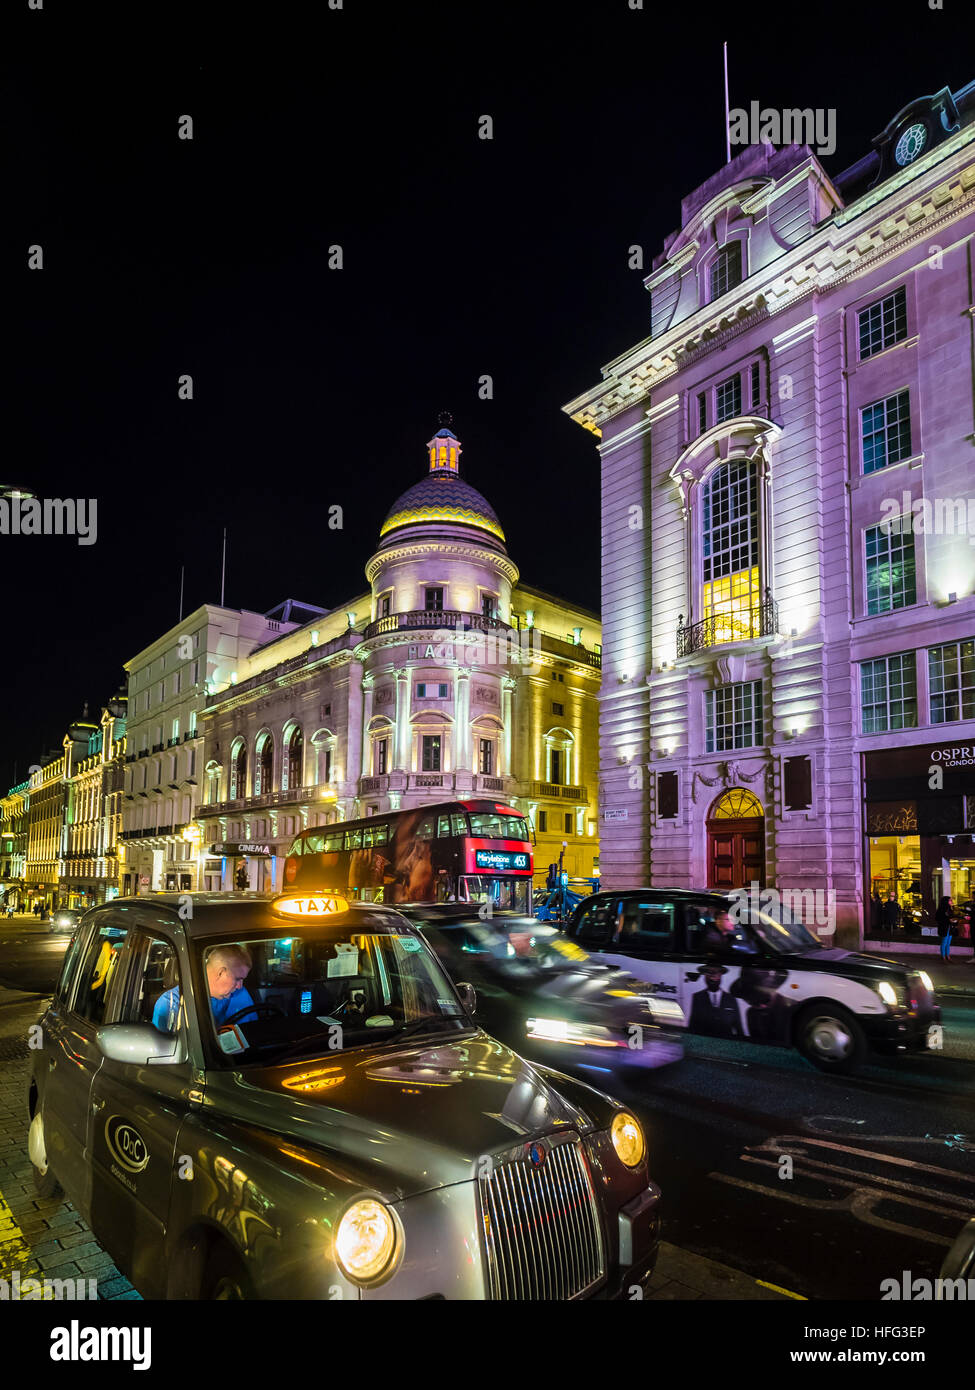 Piccadilly Circus, Regent Street, taxi at night, London, England, United Kingdom Stock Photo